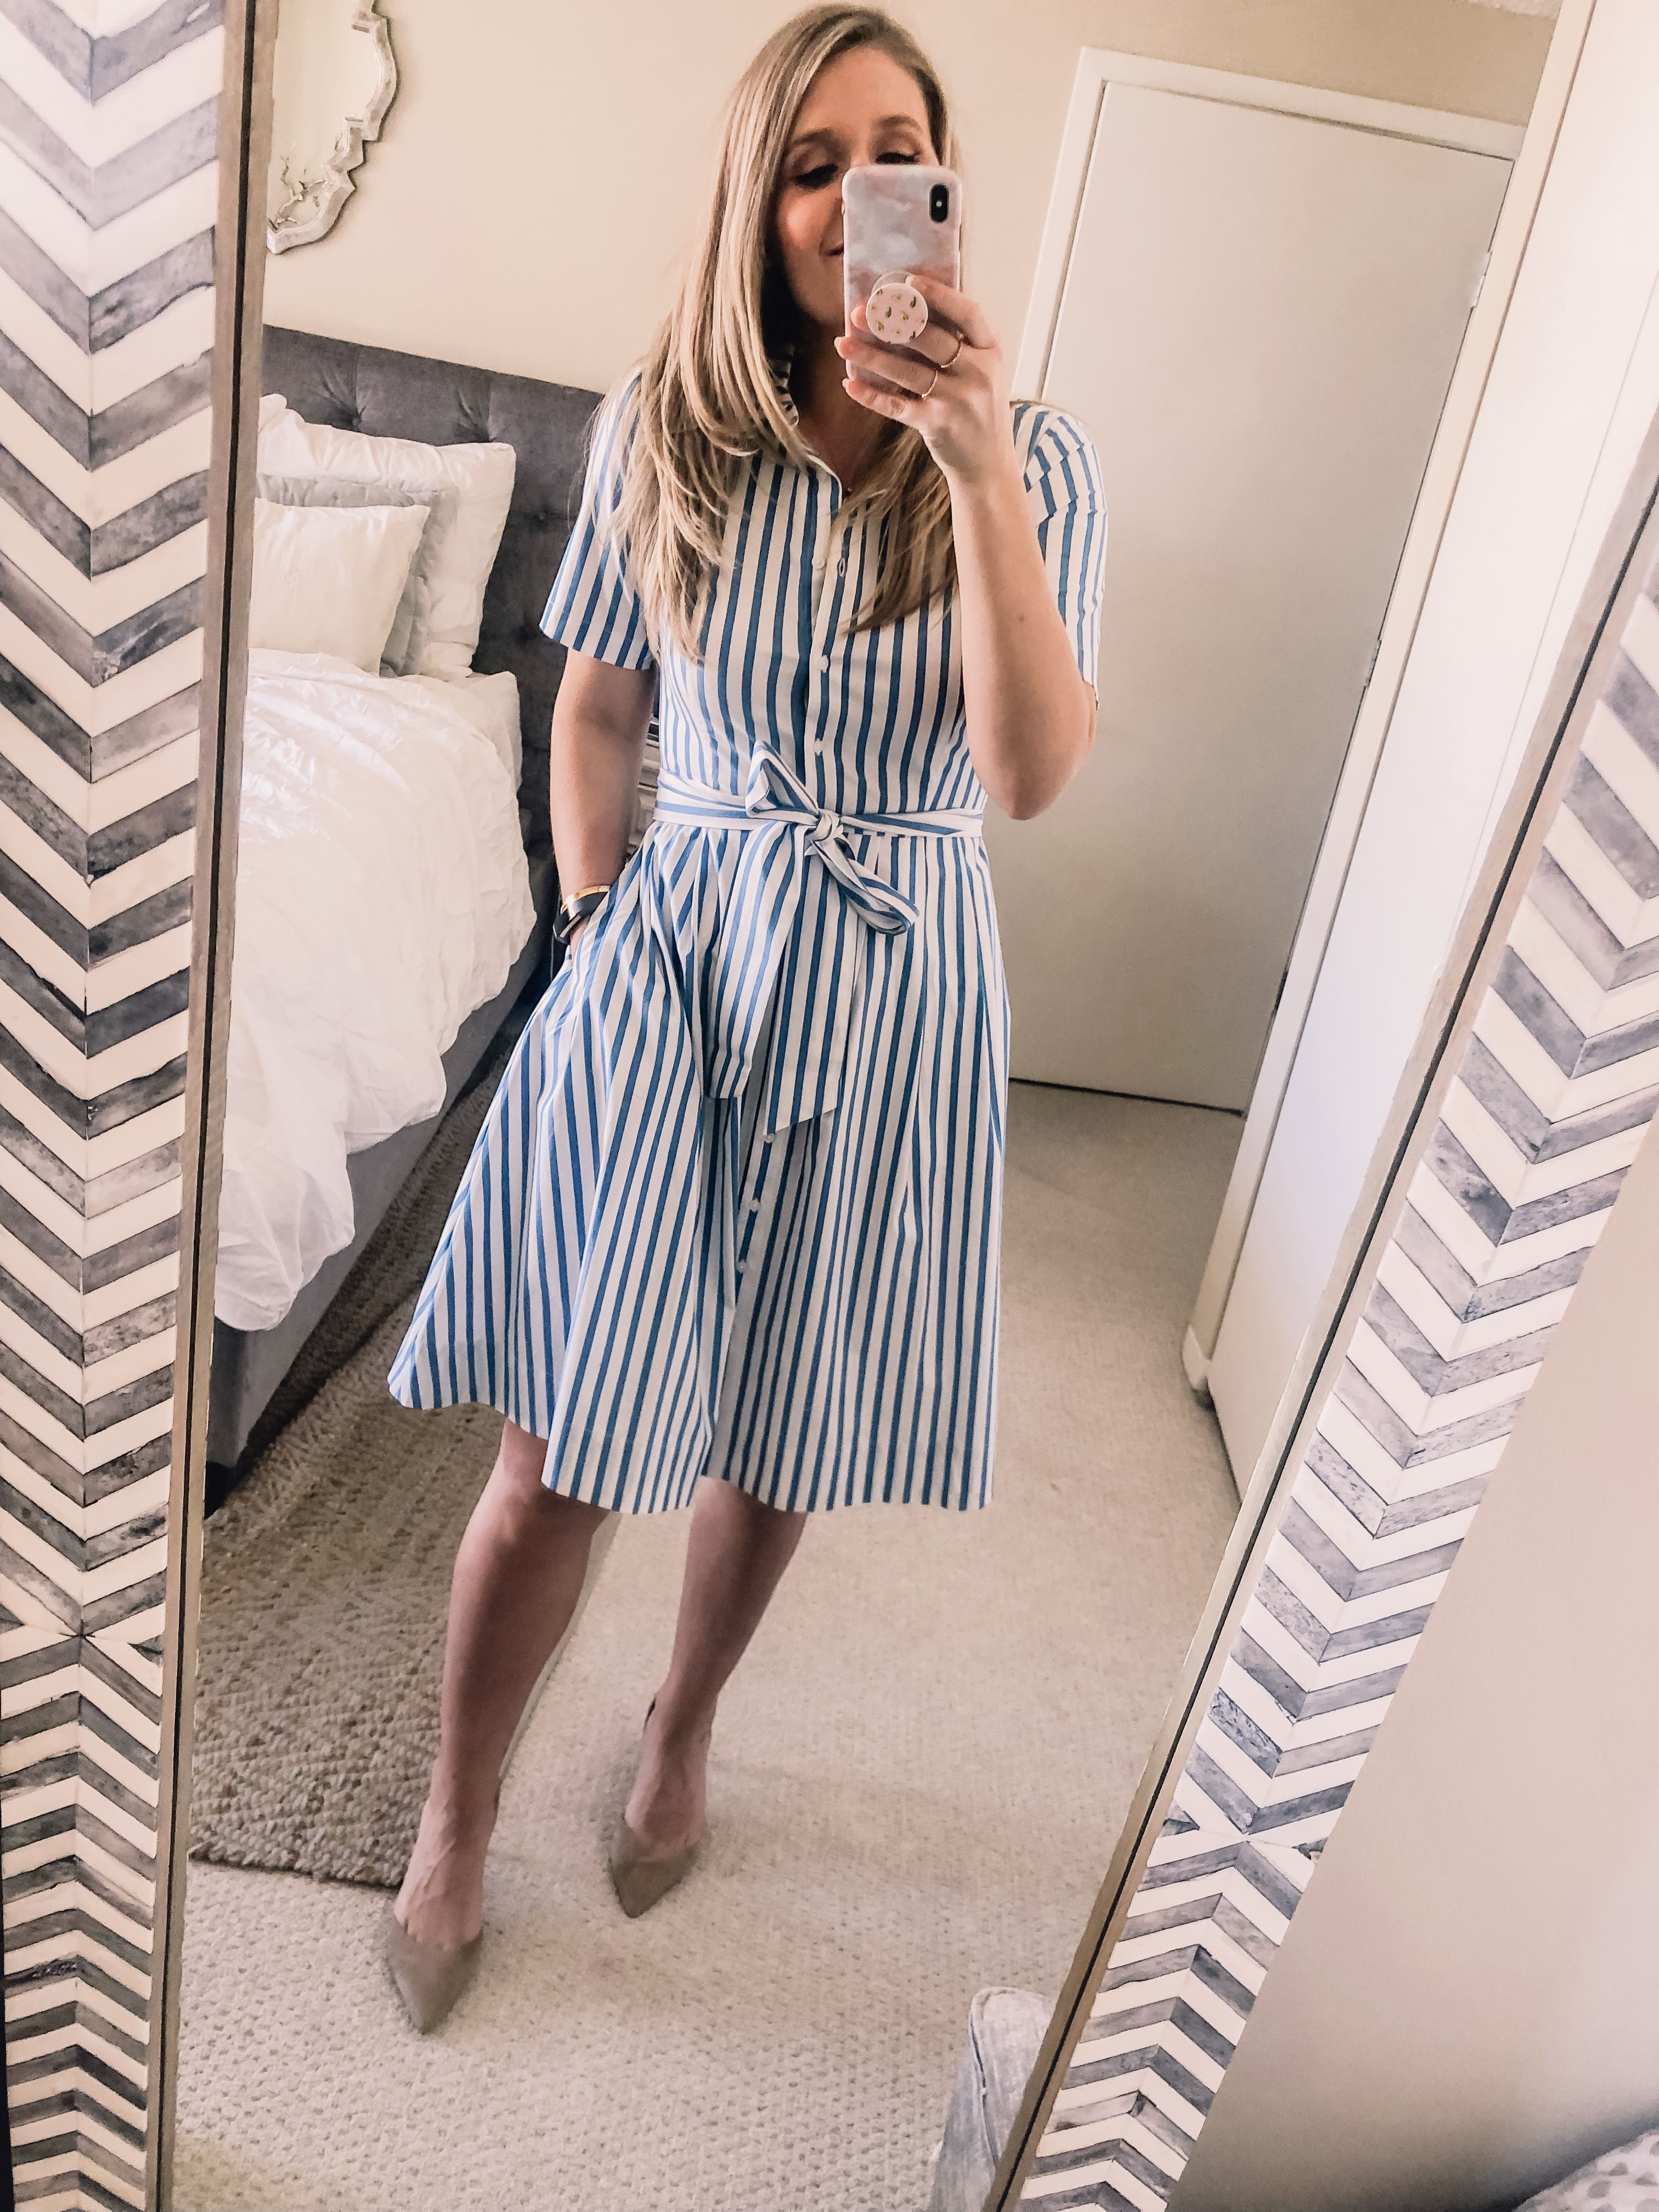 Ootd 3 22 19 Blue Striped Dress Visions Of Vogue Office Outfits Blue Striped Dress Shirt Dress [ 4032 x 3024 Pixel ]